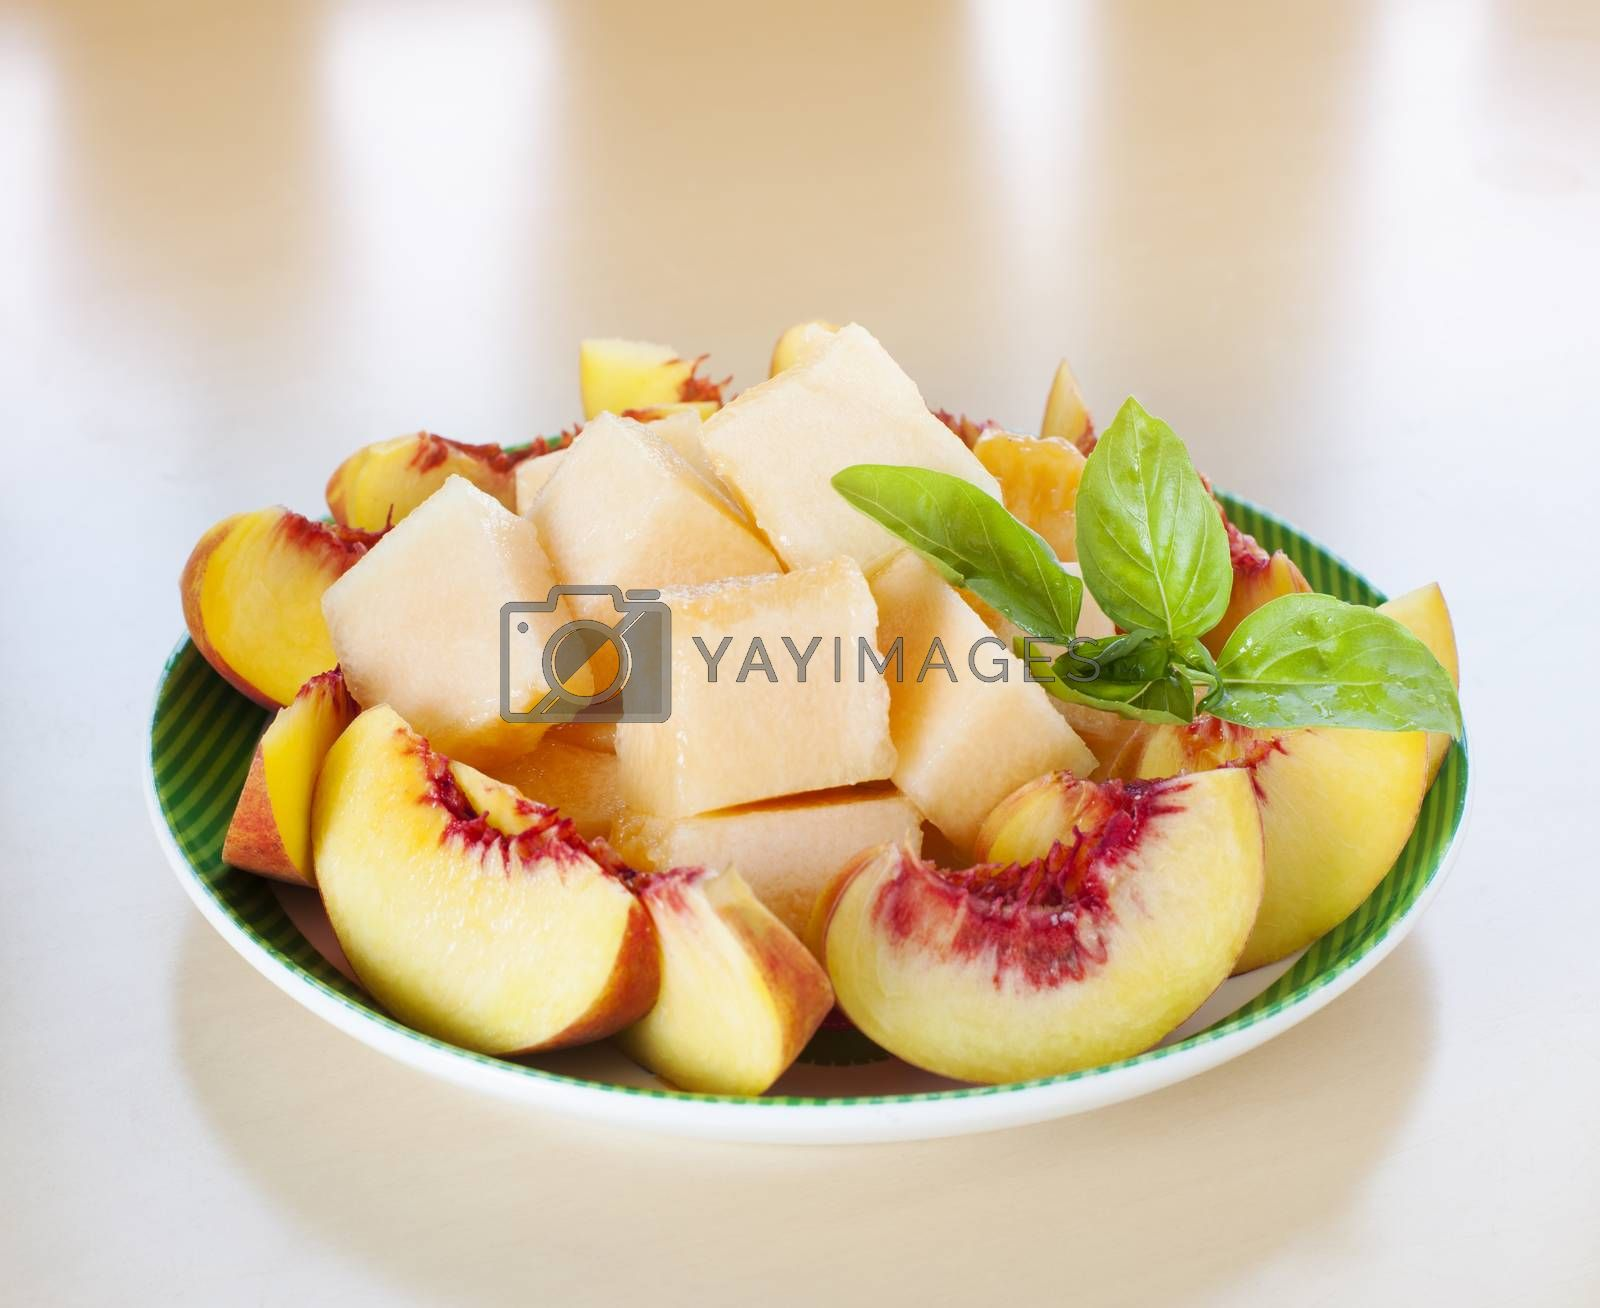 Plate with sliced fruits - peaches and melon with fresh basil.